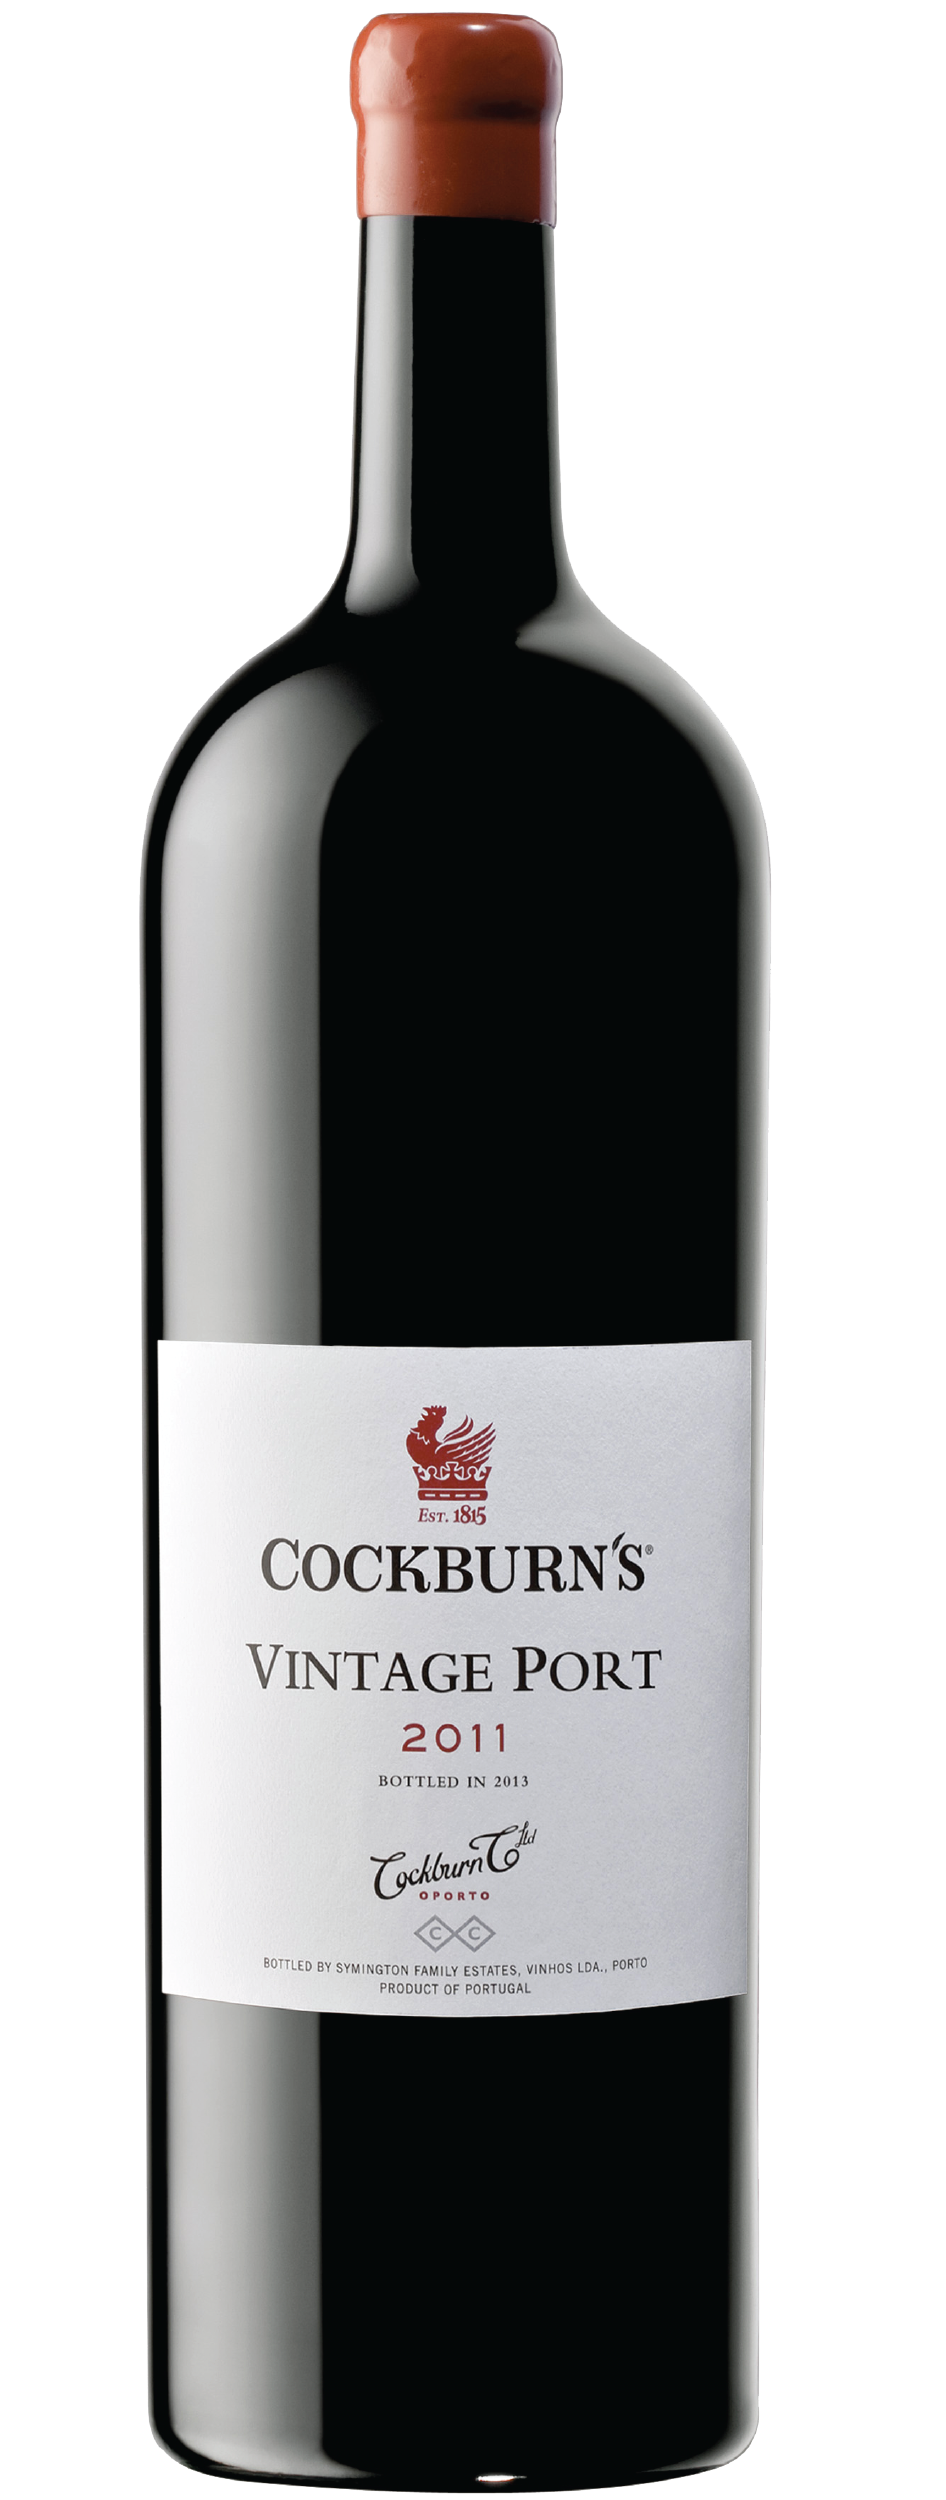 Product Image for COCKBURN'S VINTAGE PORT 2011 - DOUBLE MAGNUM